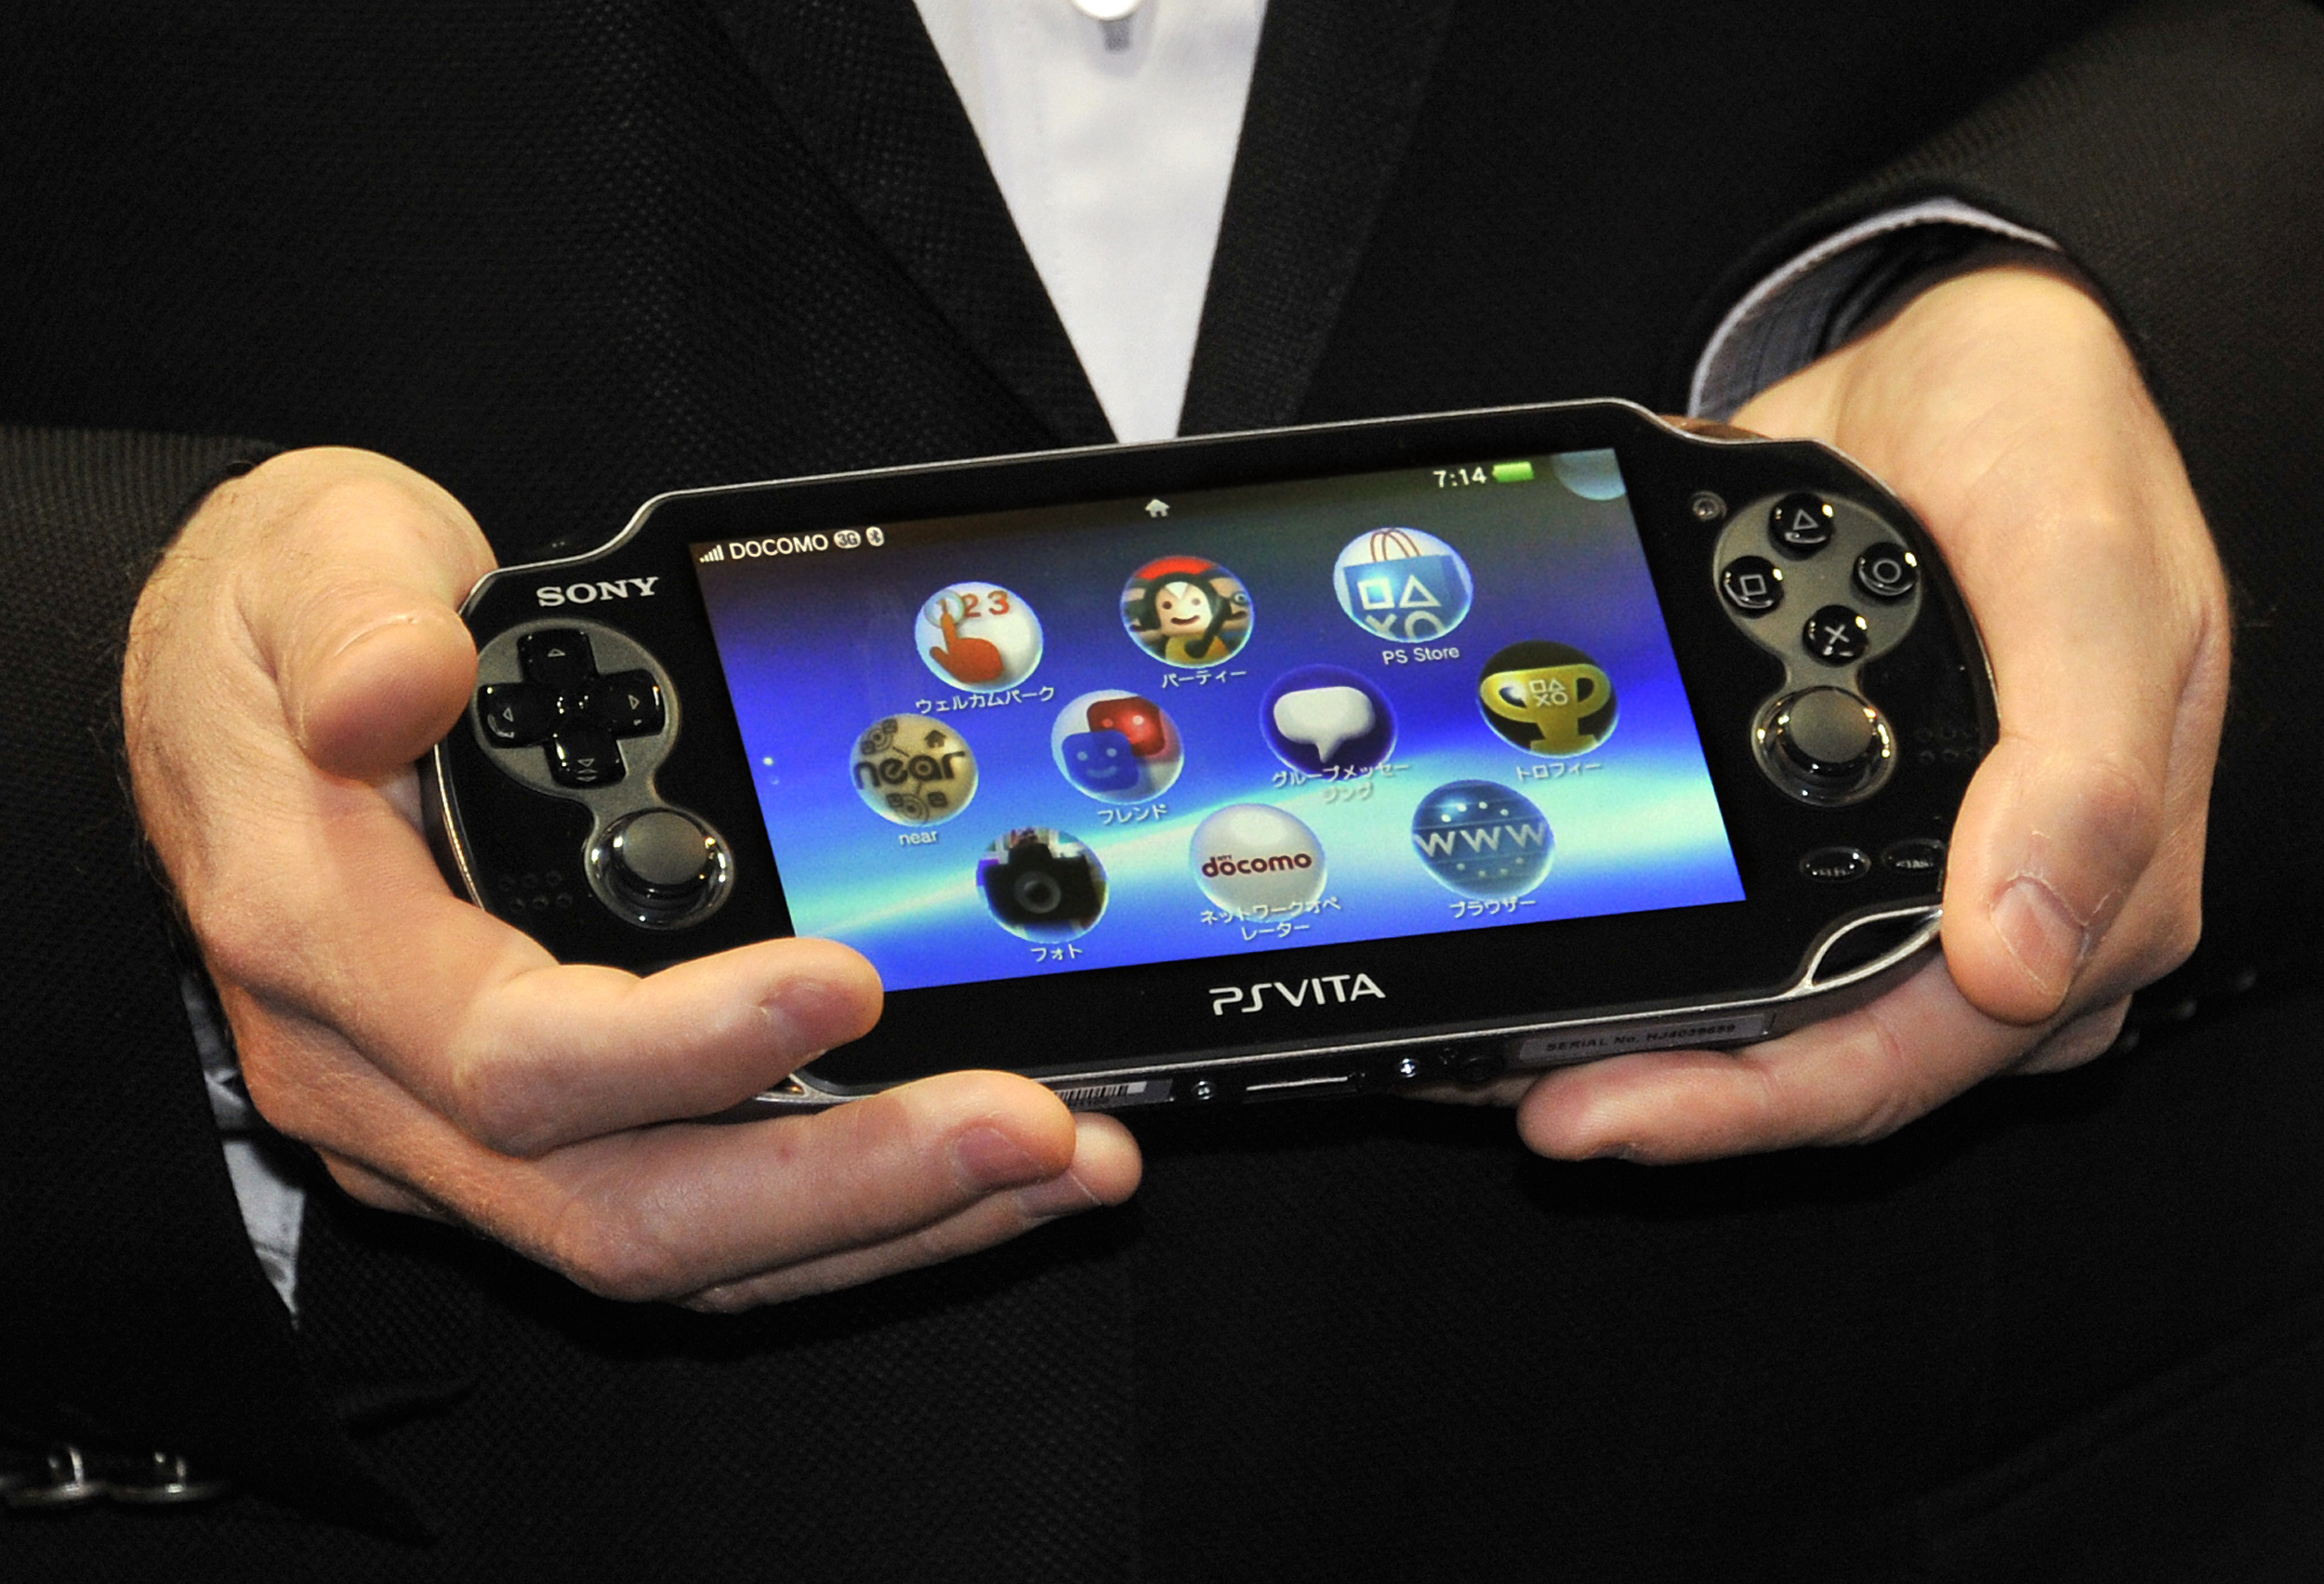 Sony Saves Struggling PlayStation Vita With Indie Game Store Category